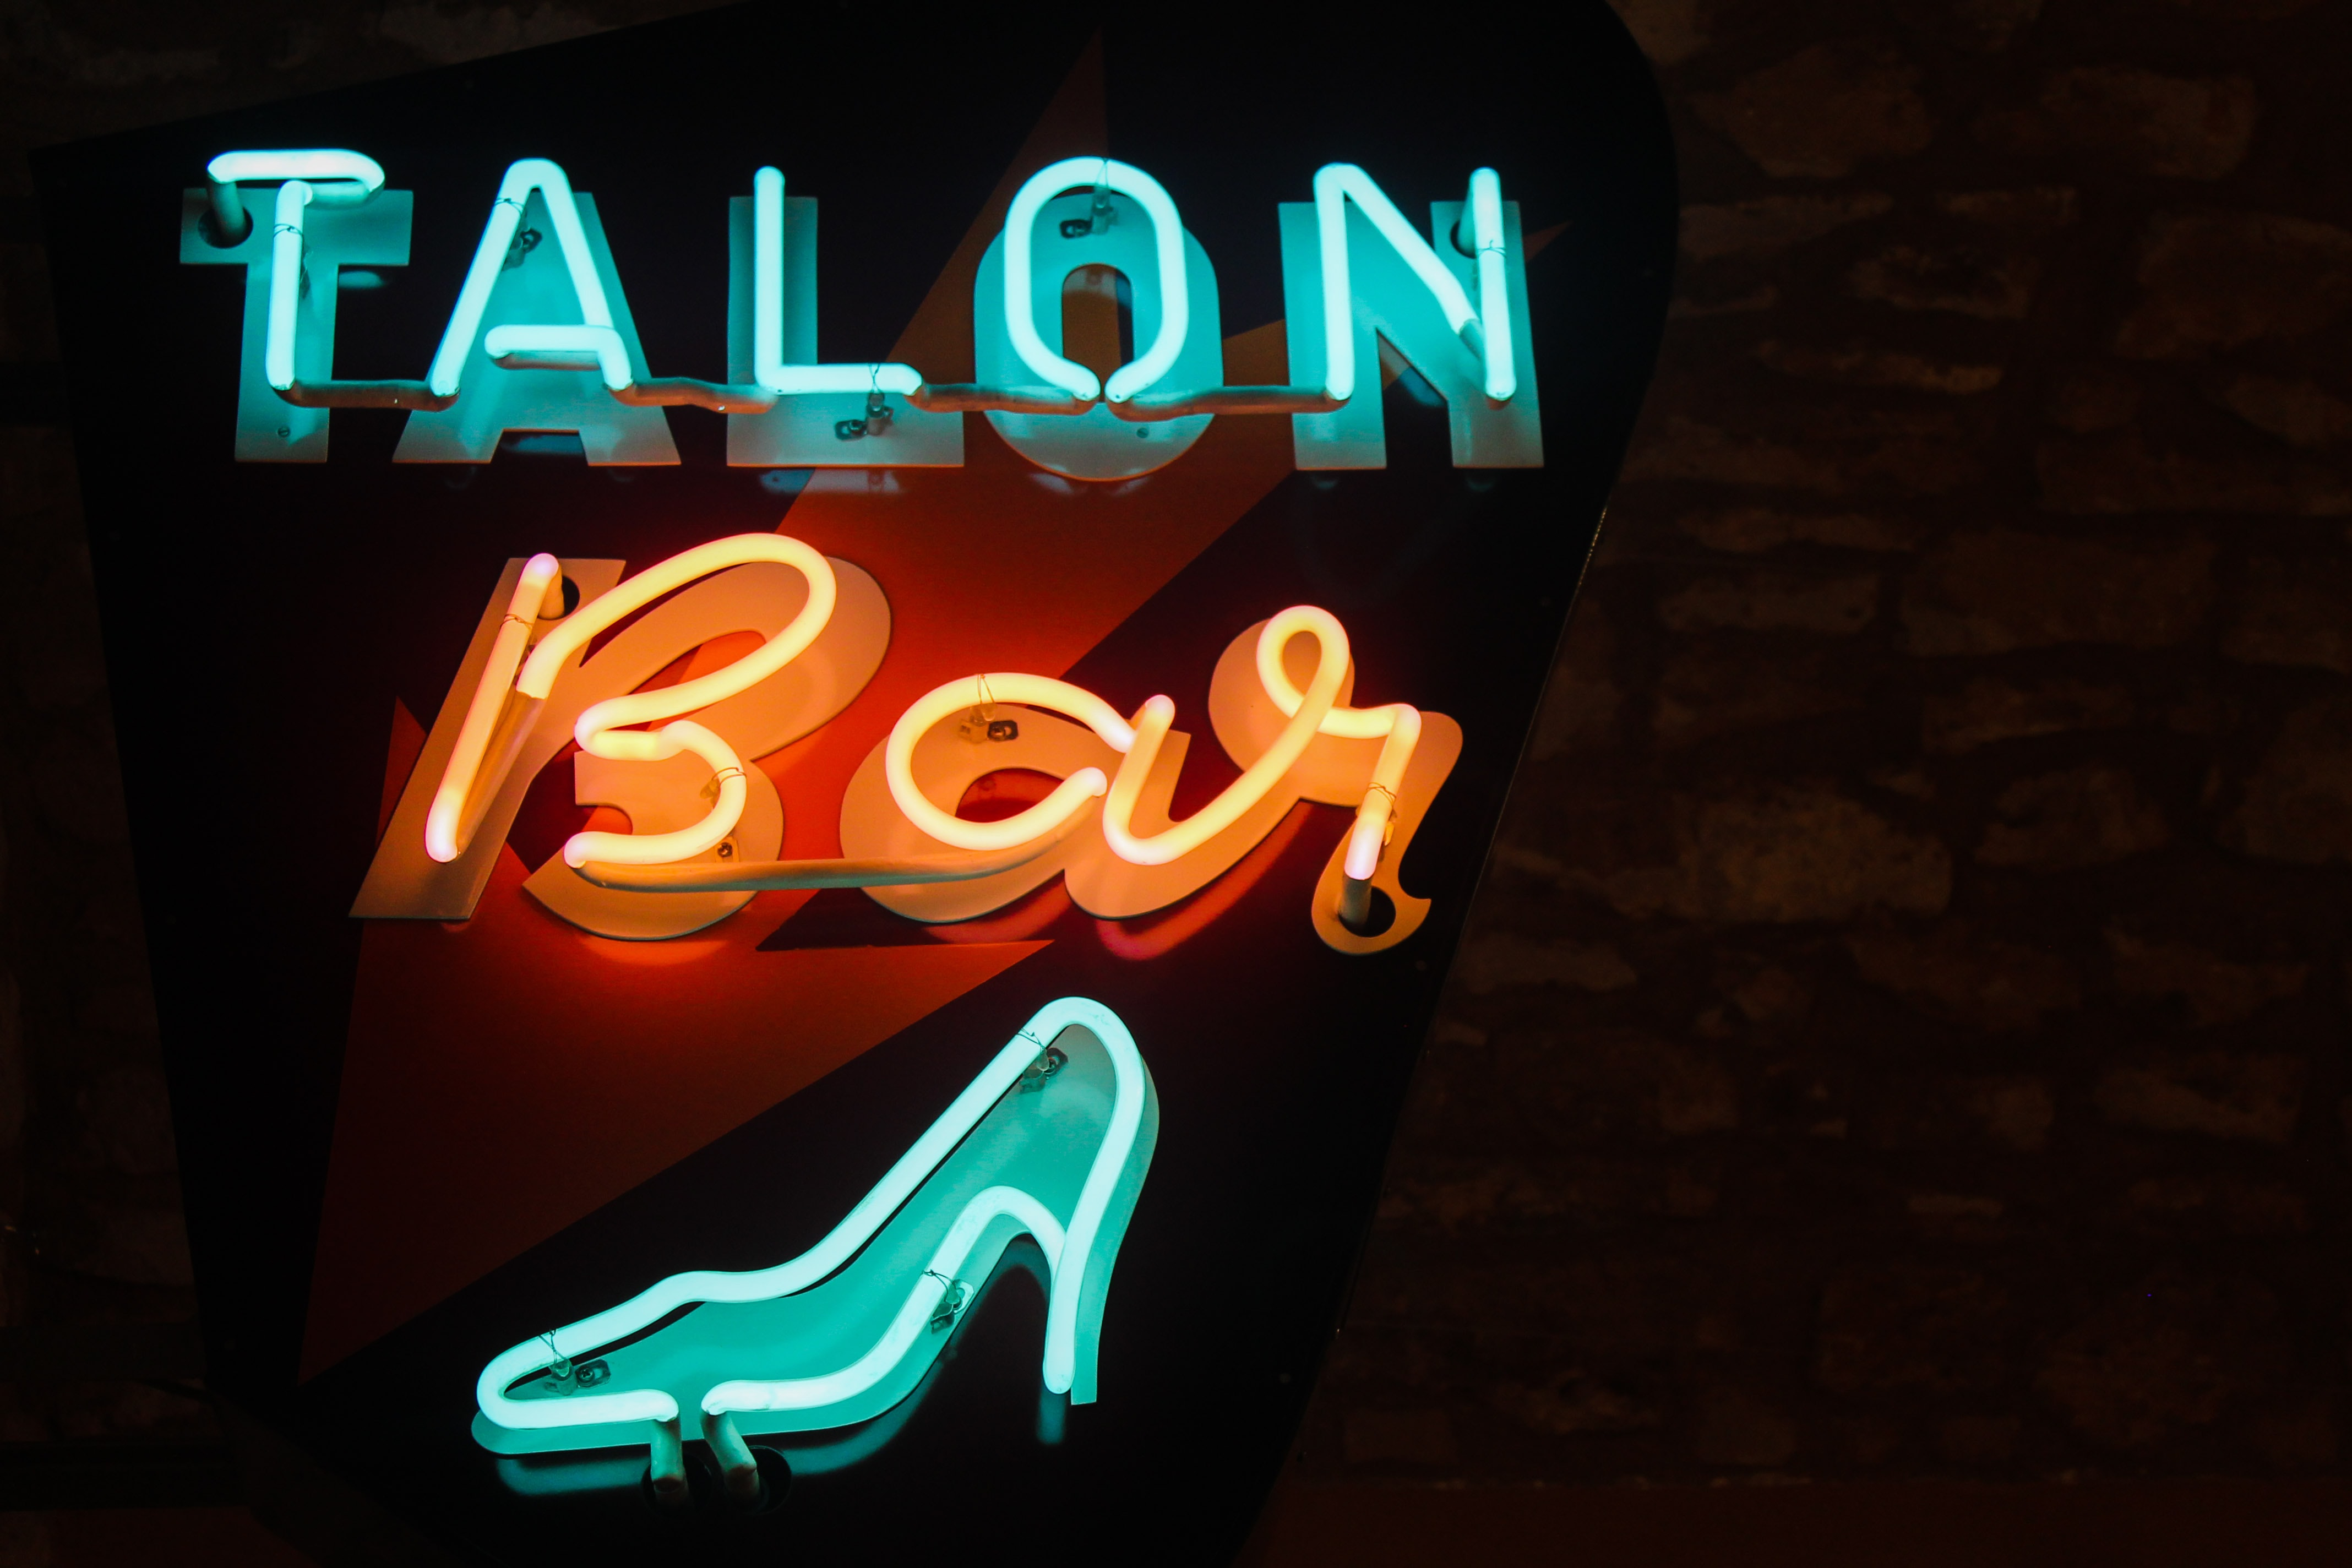 Talon bar neon signage